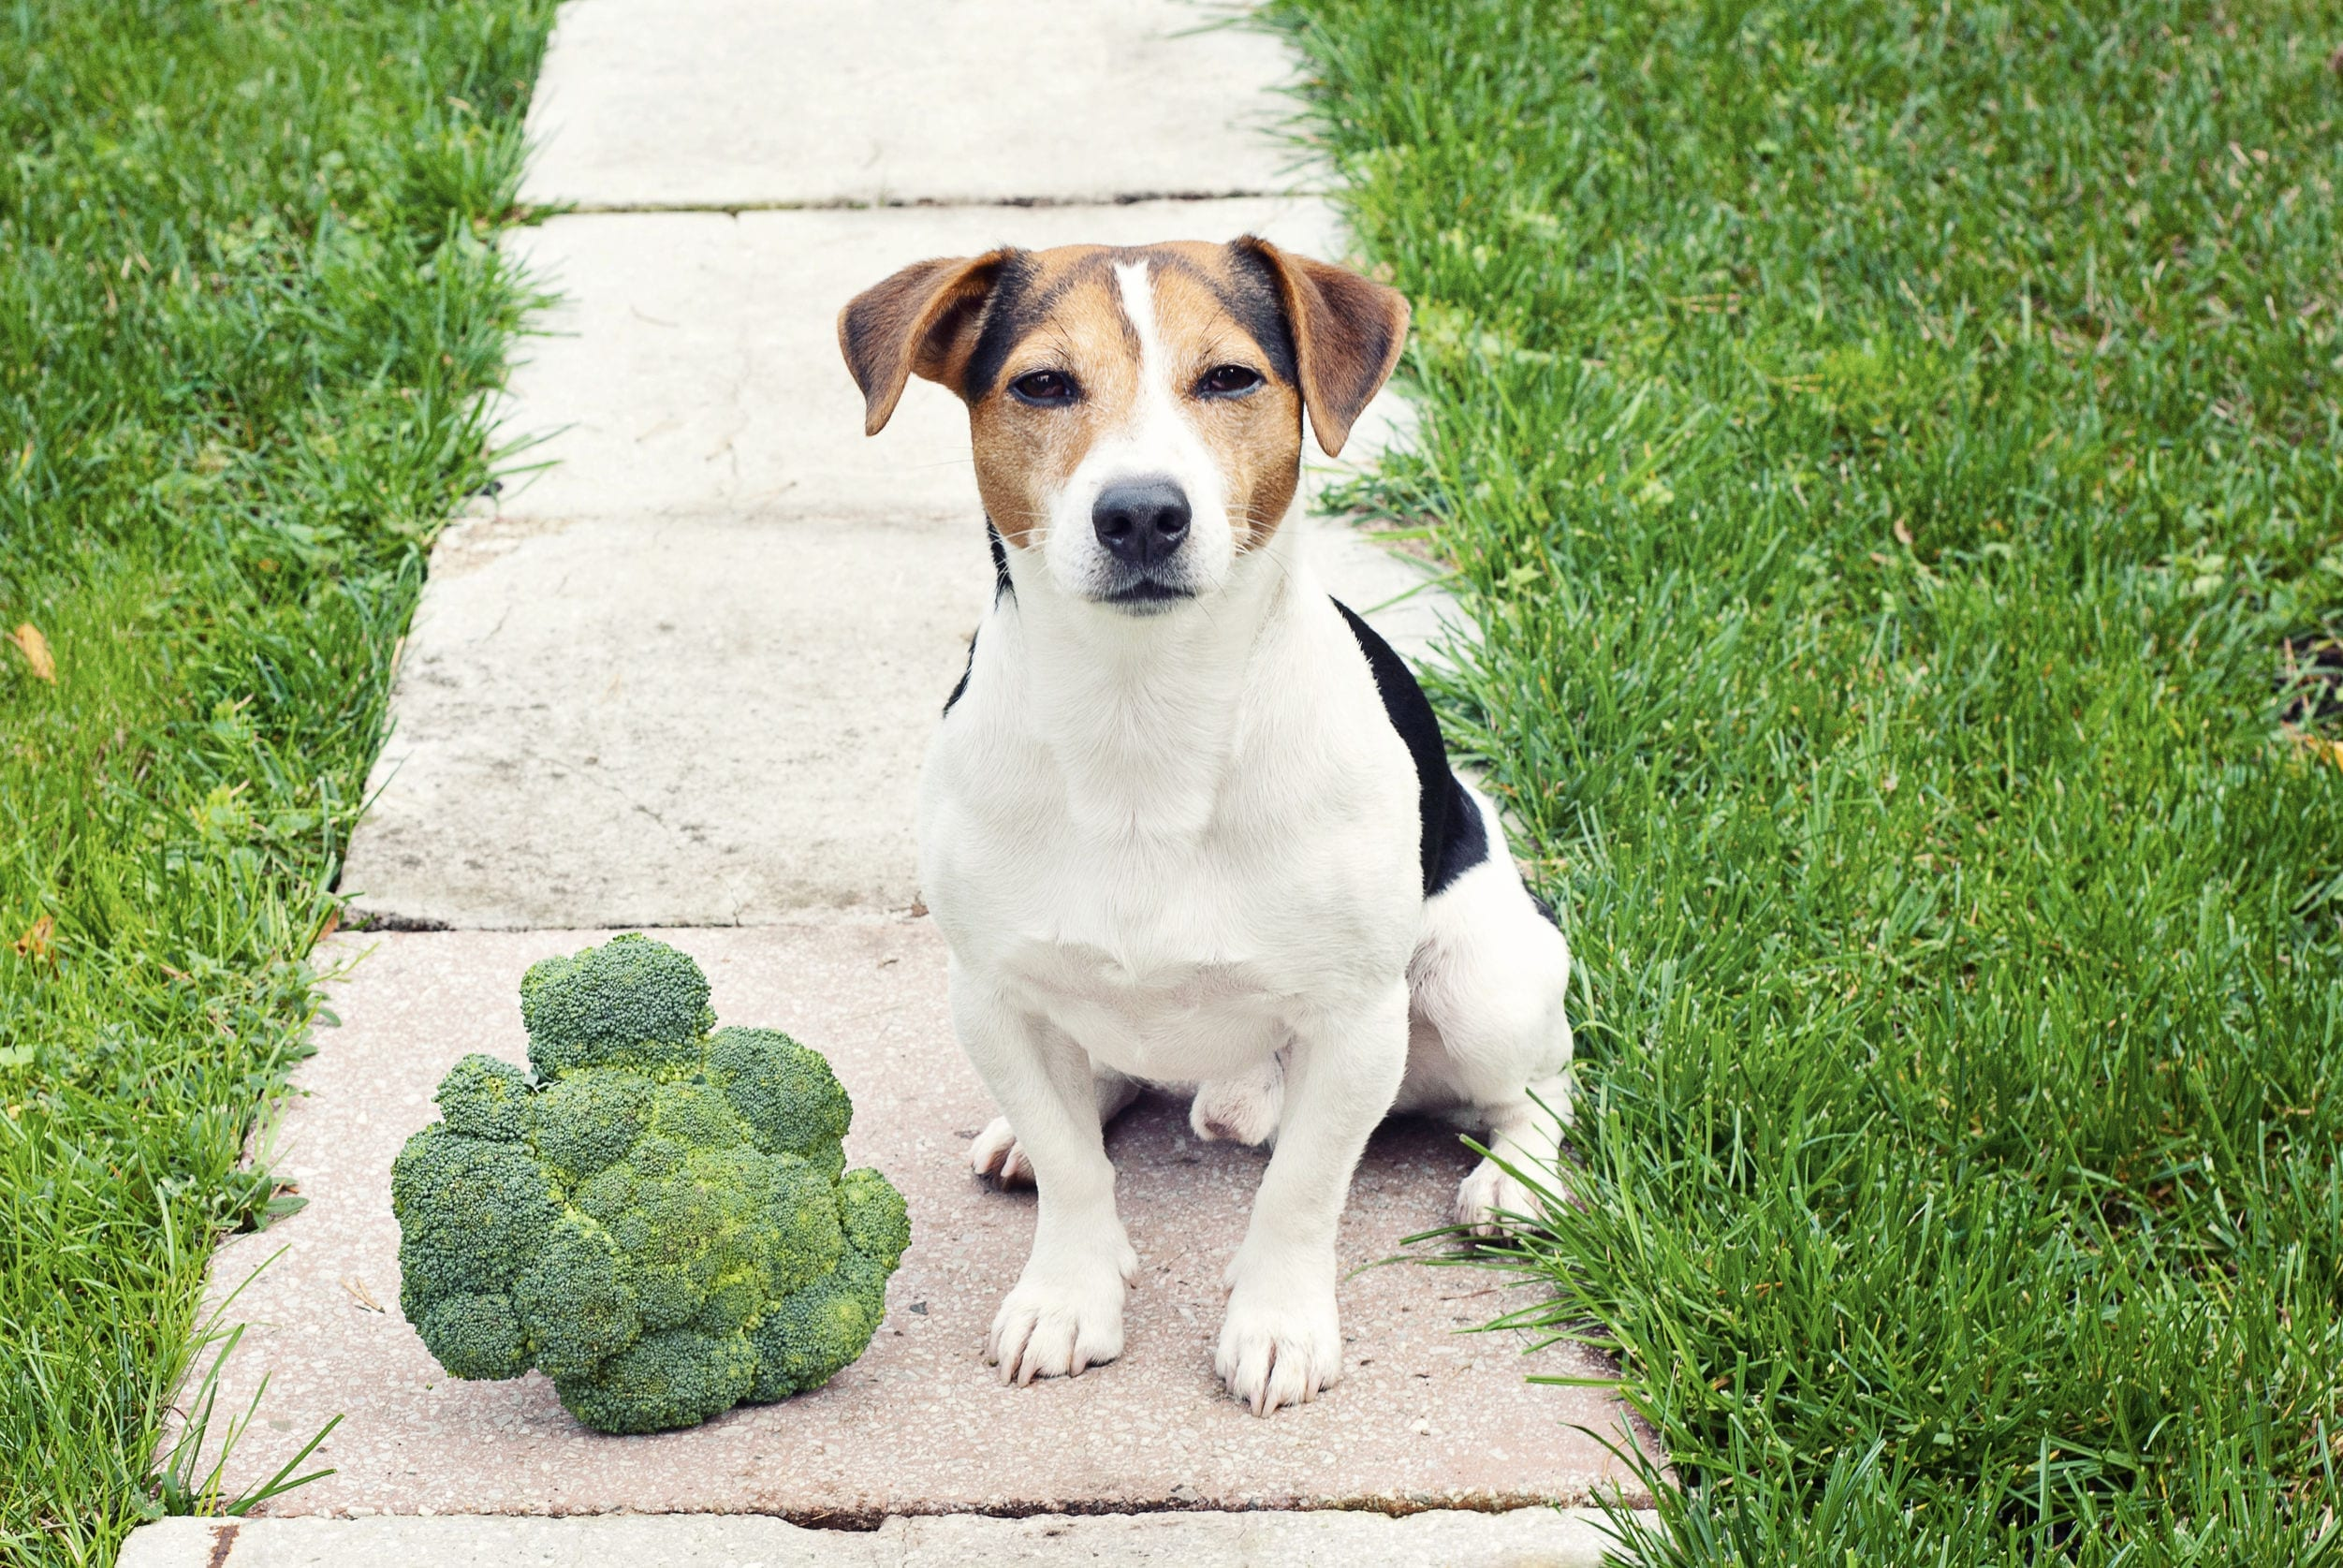 Human Food For Dogs: Can Dogs Eat Broccoli?